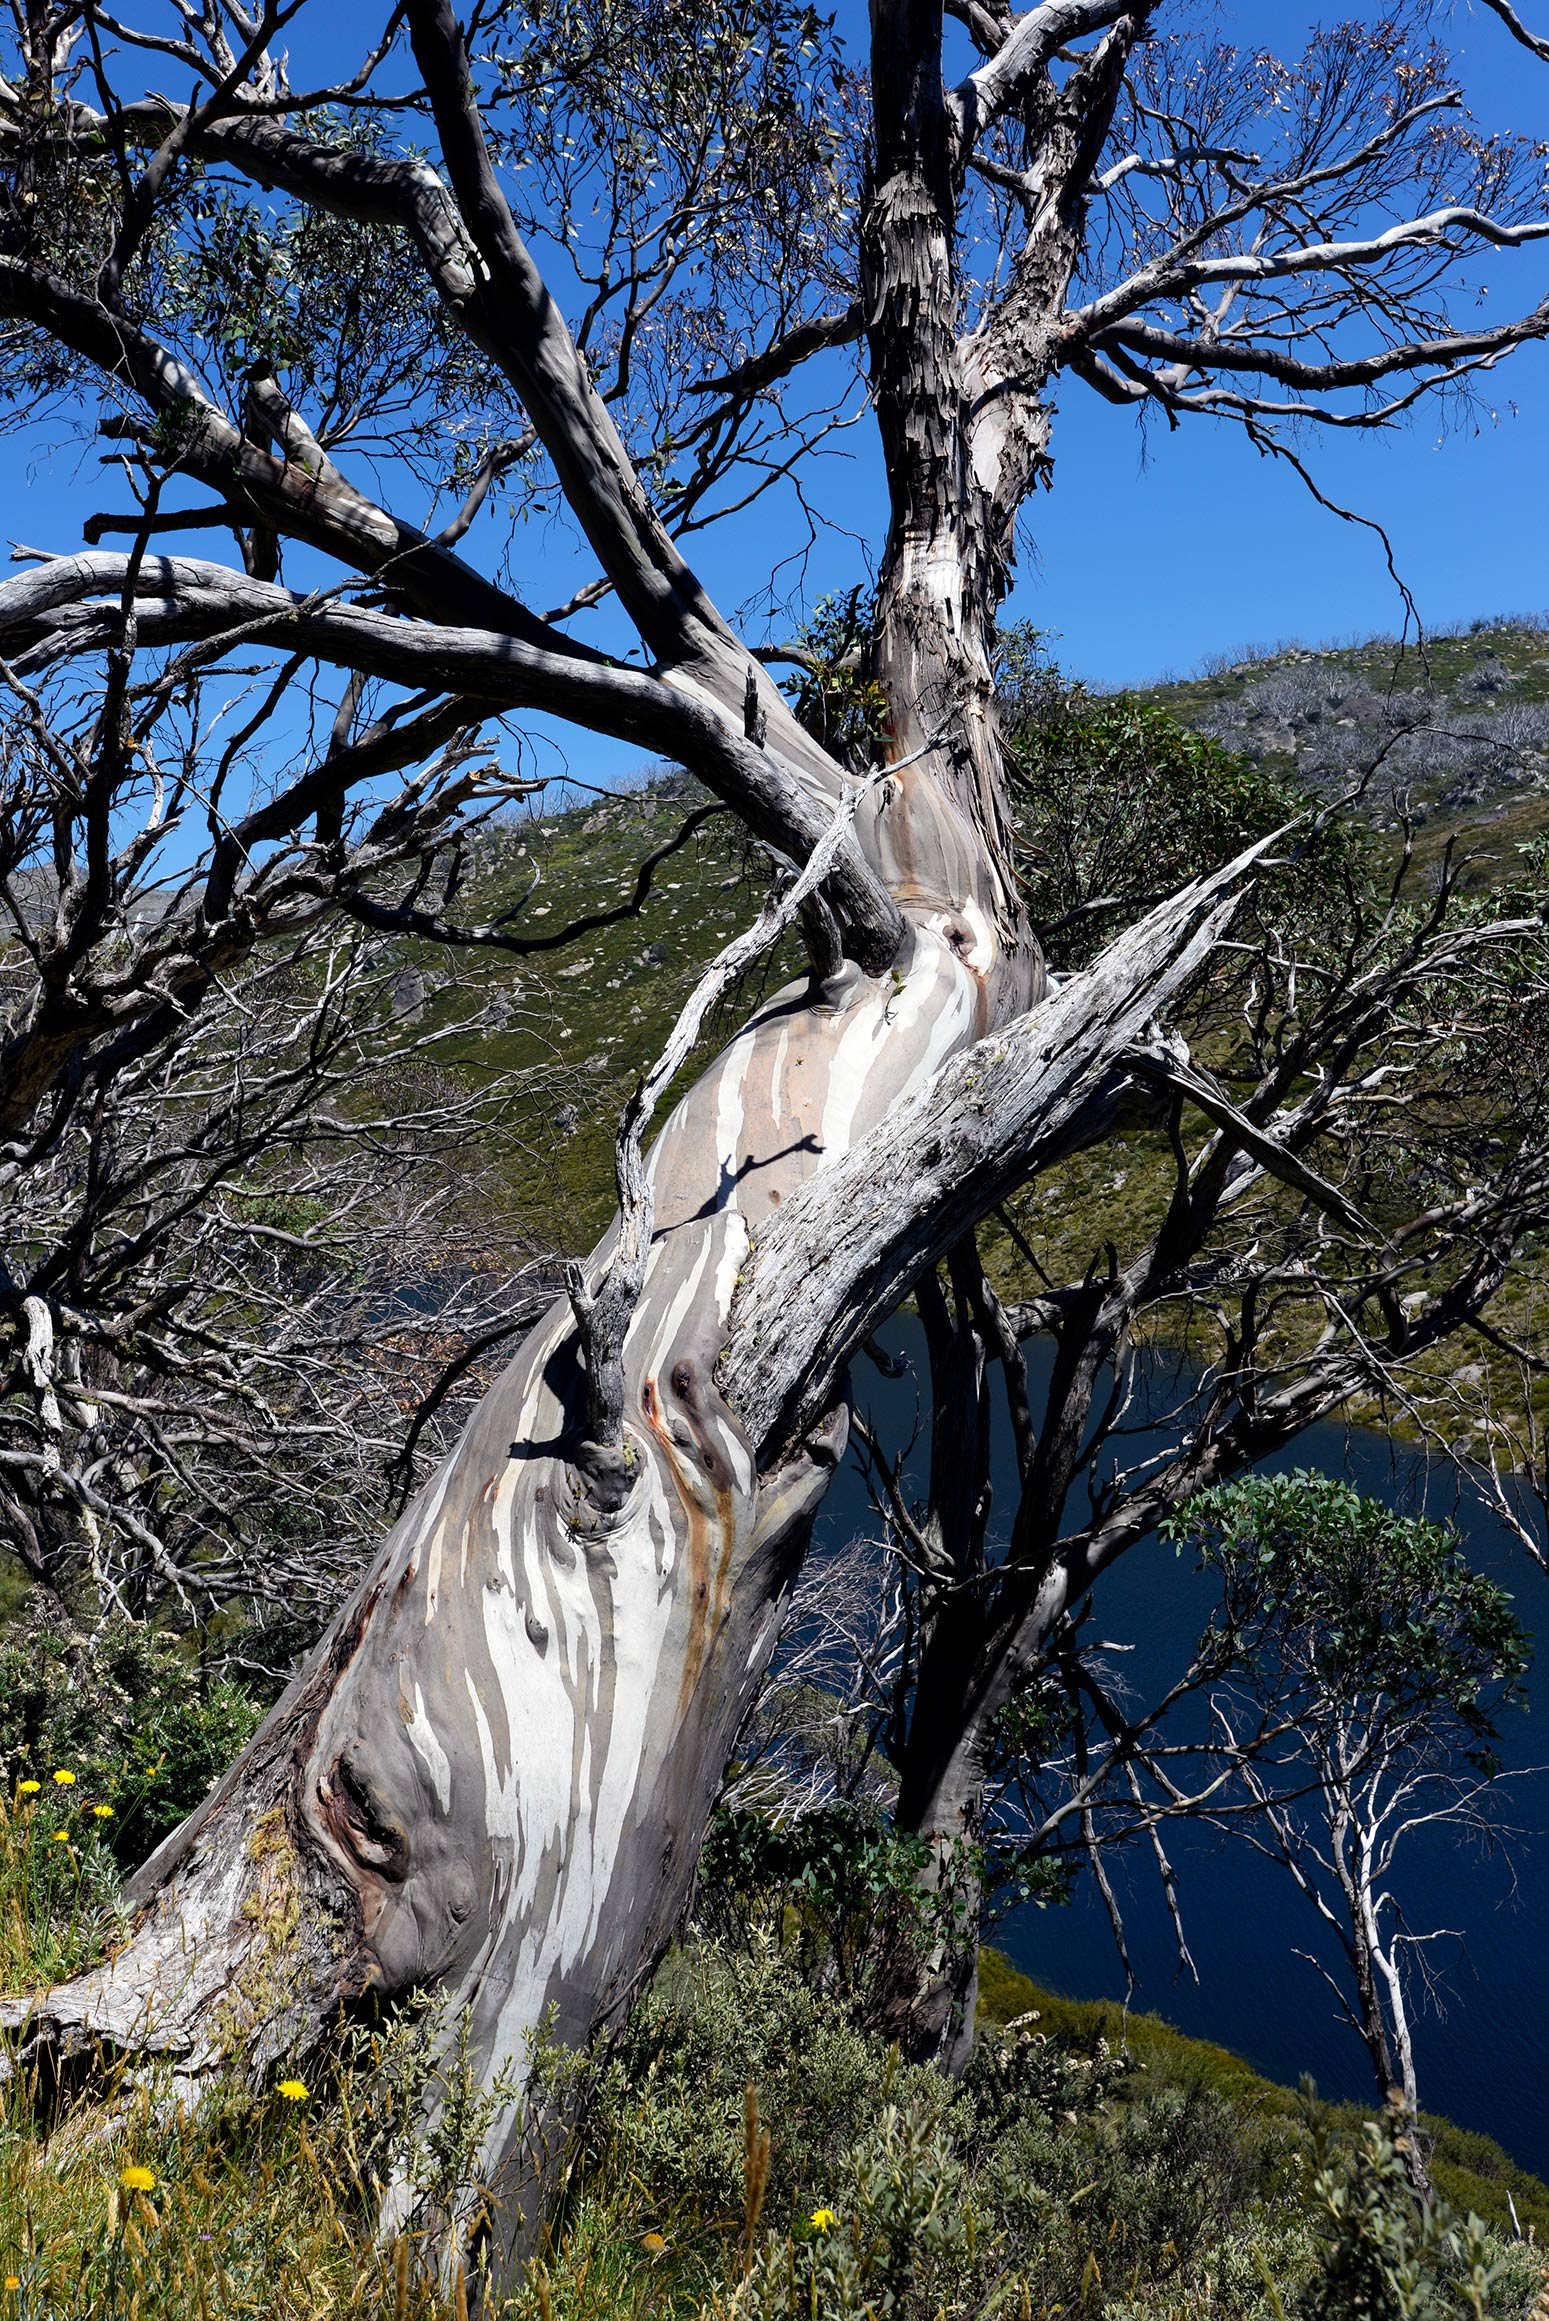 A gnarled snow gum. This tree has survived many winters. It was likely growing well before the dam was built.